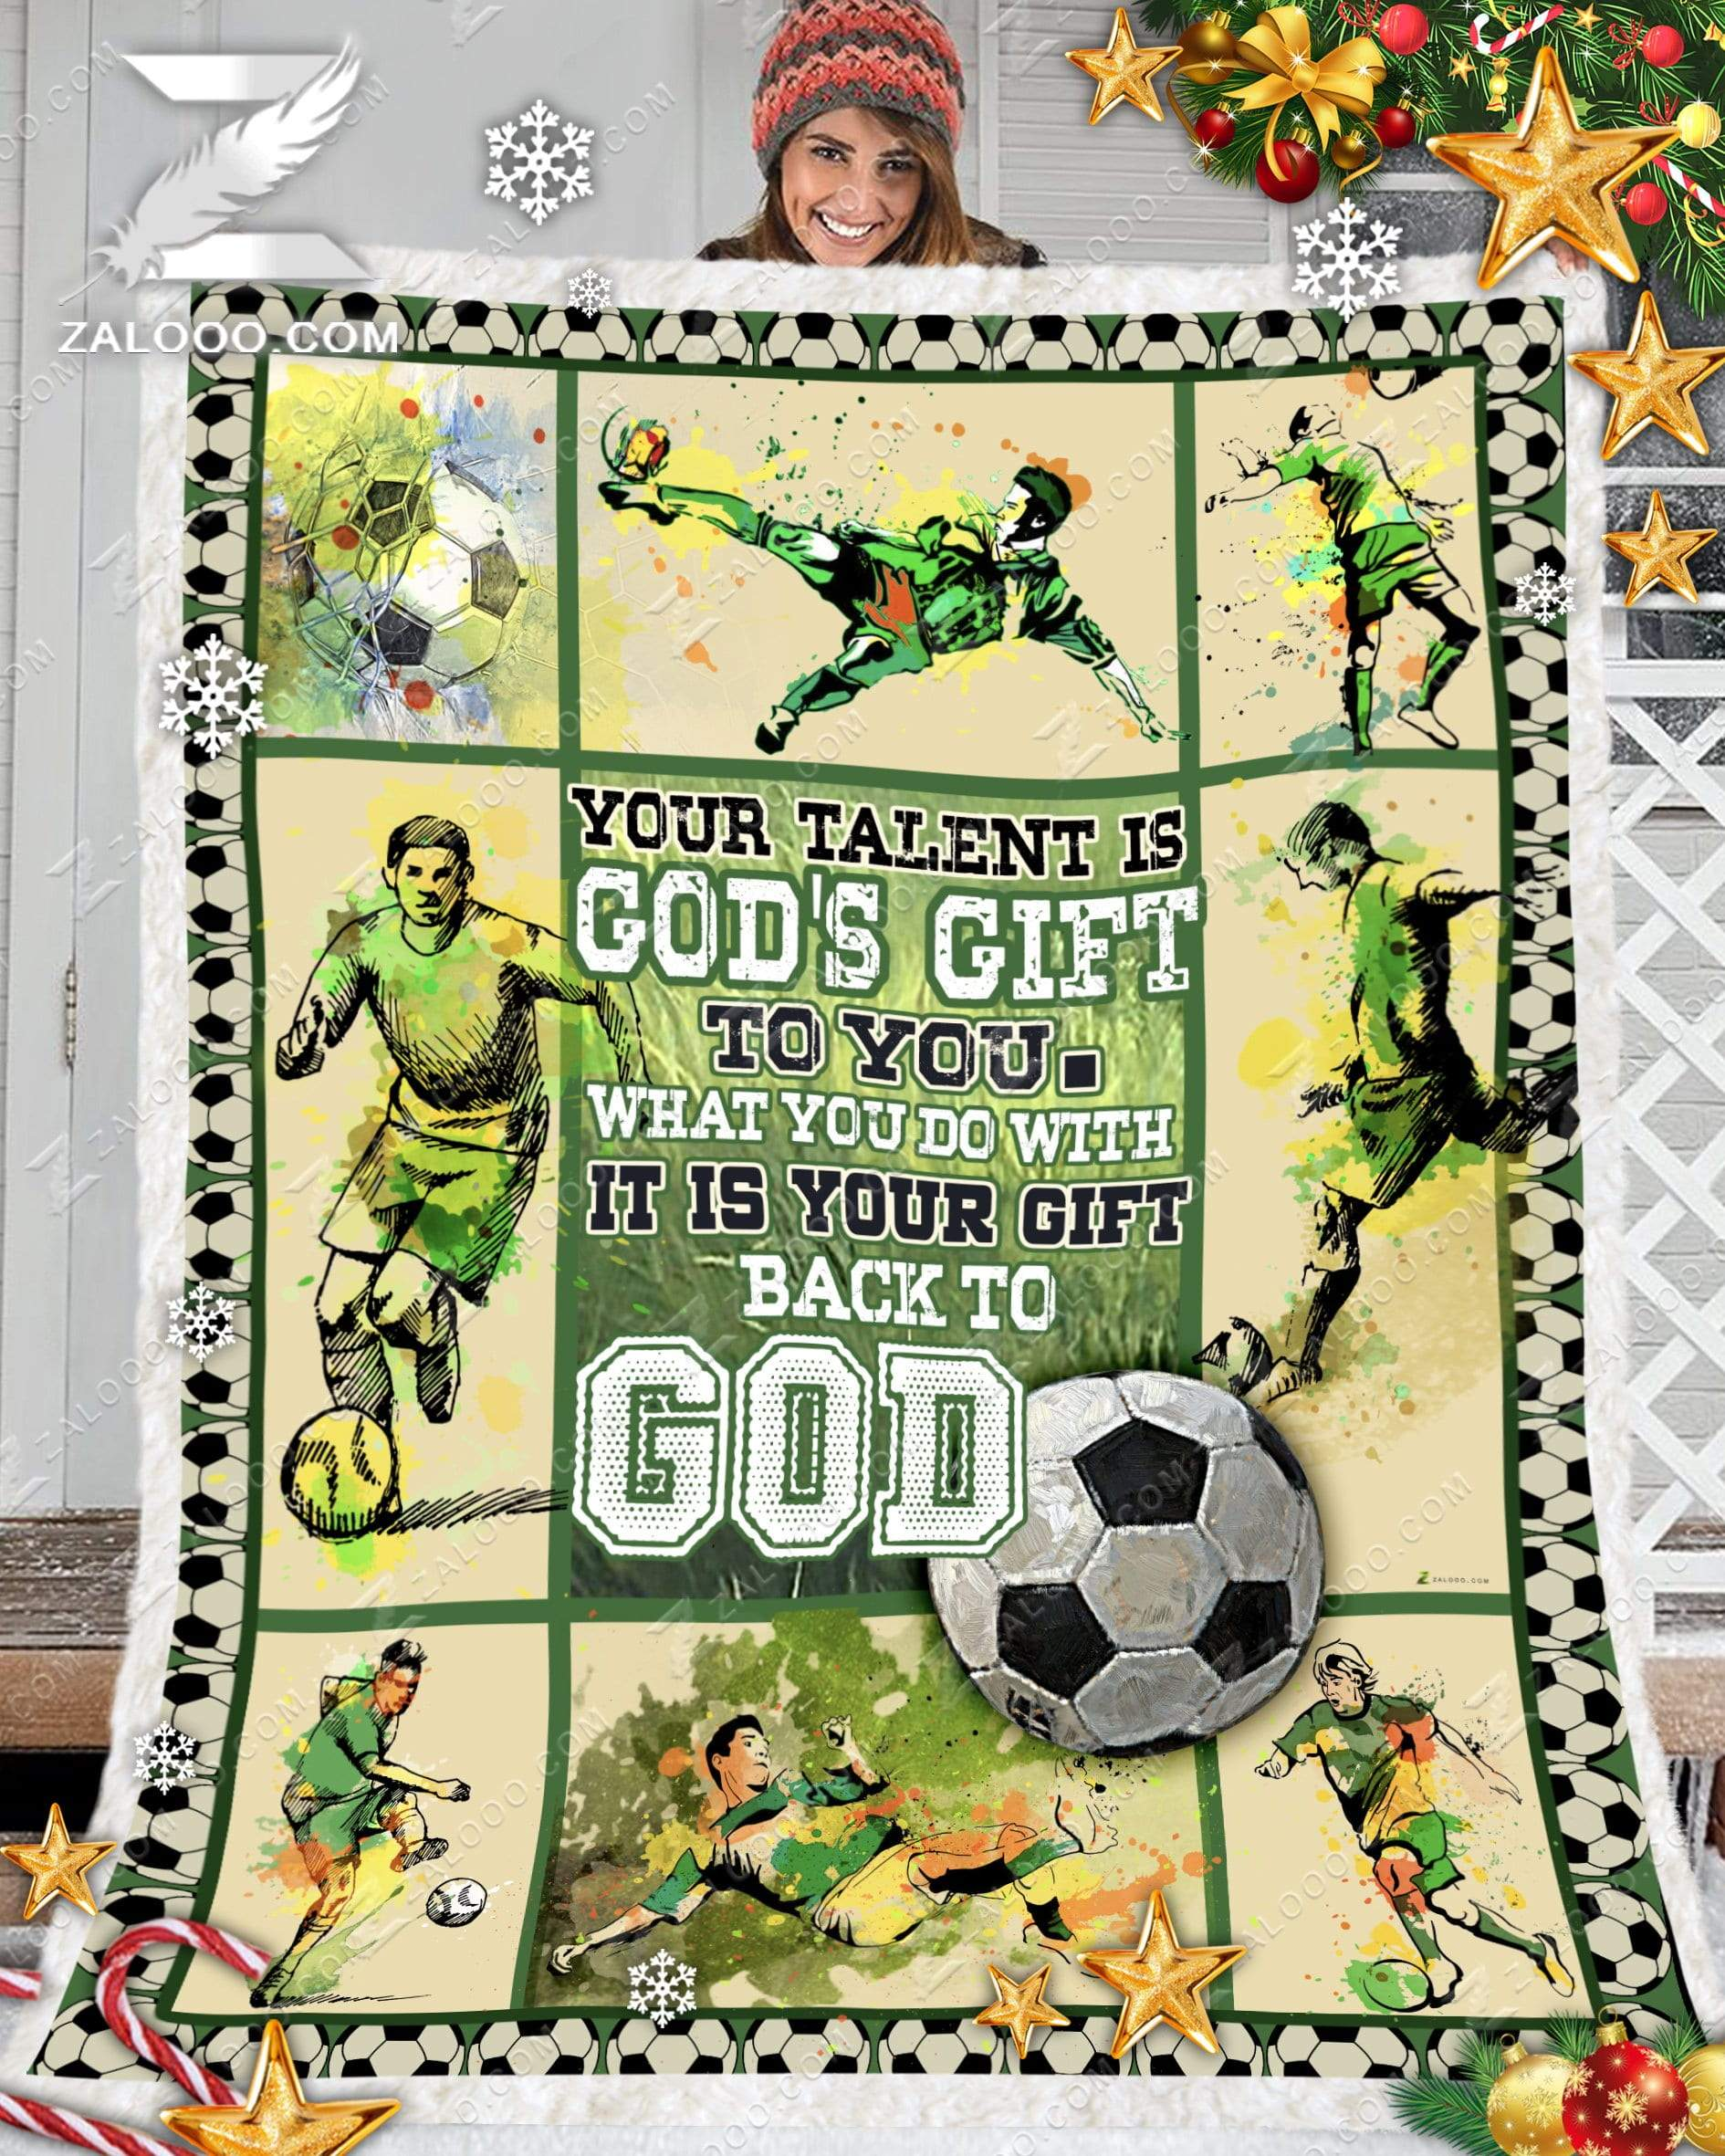 Birthday Gift - SOCCER - Your Talent Is Gods Gift To You - 1